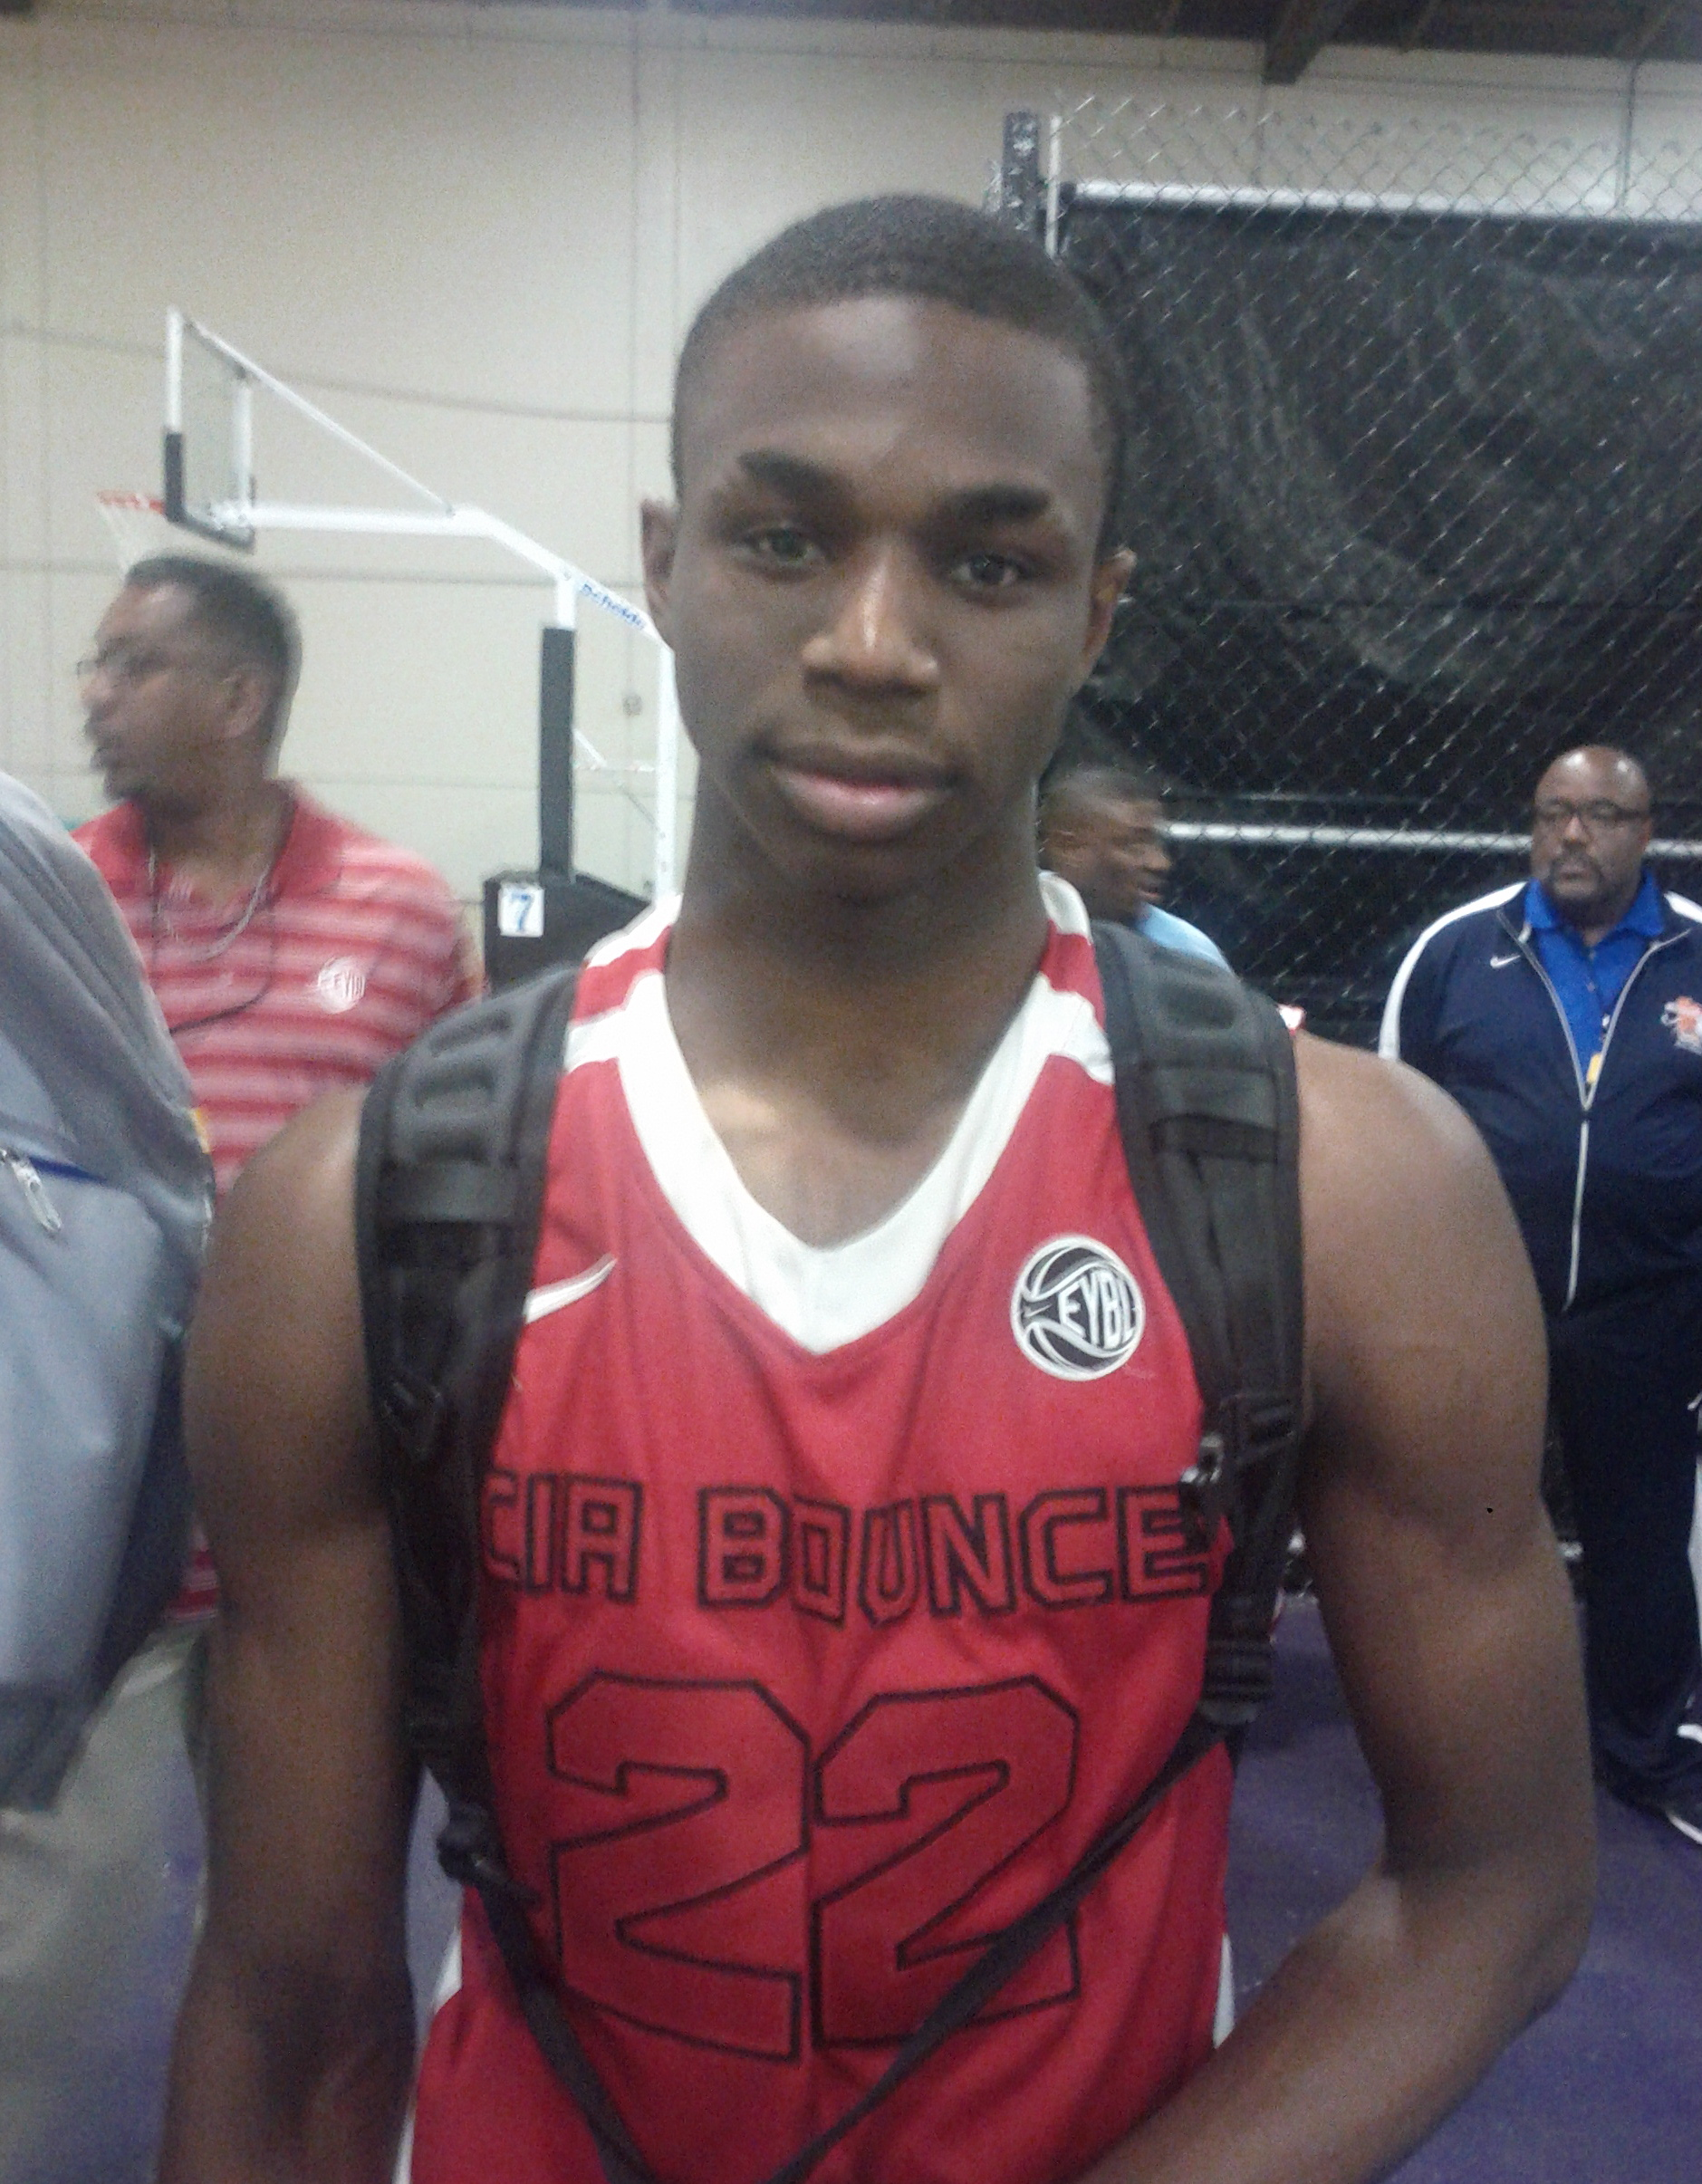 Andrew Wiggins of CIA Bounce, Photo by Andrew Slater